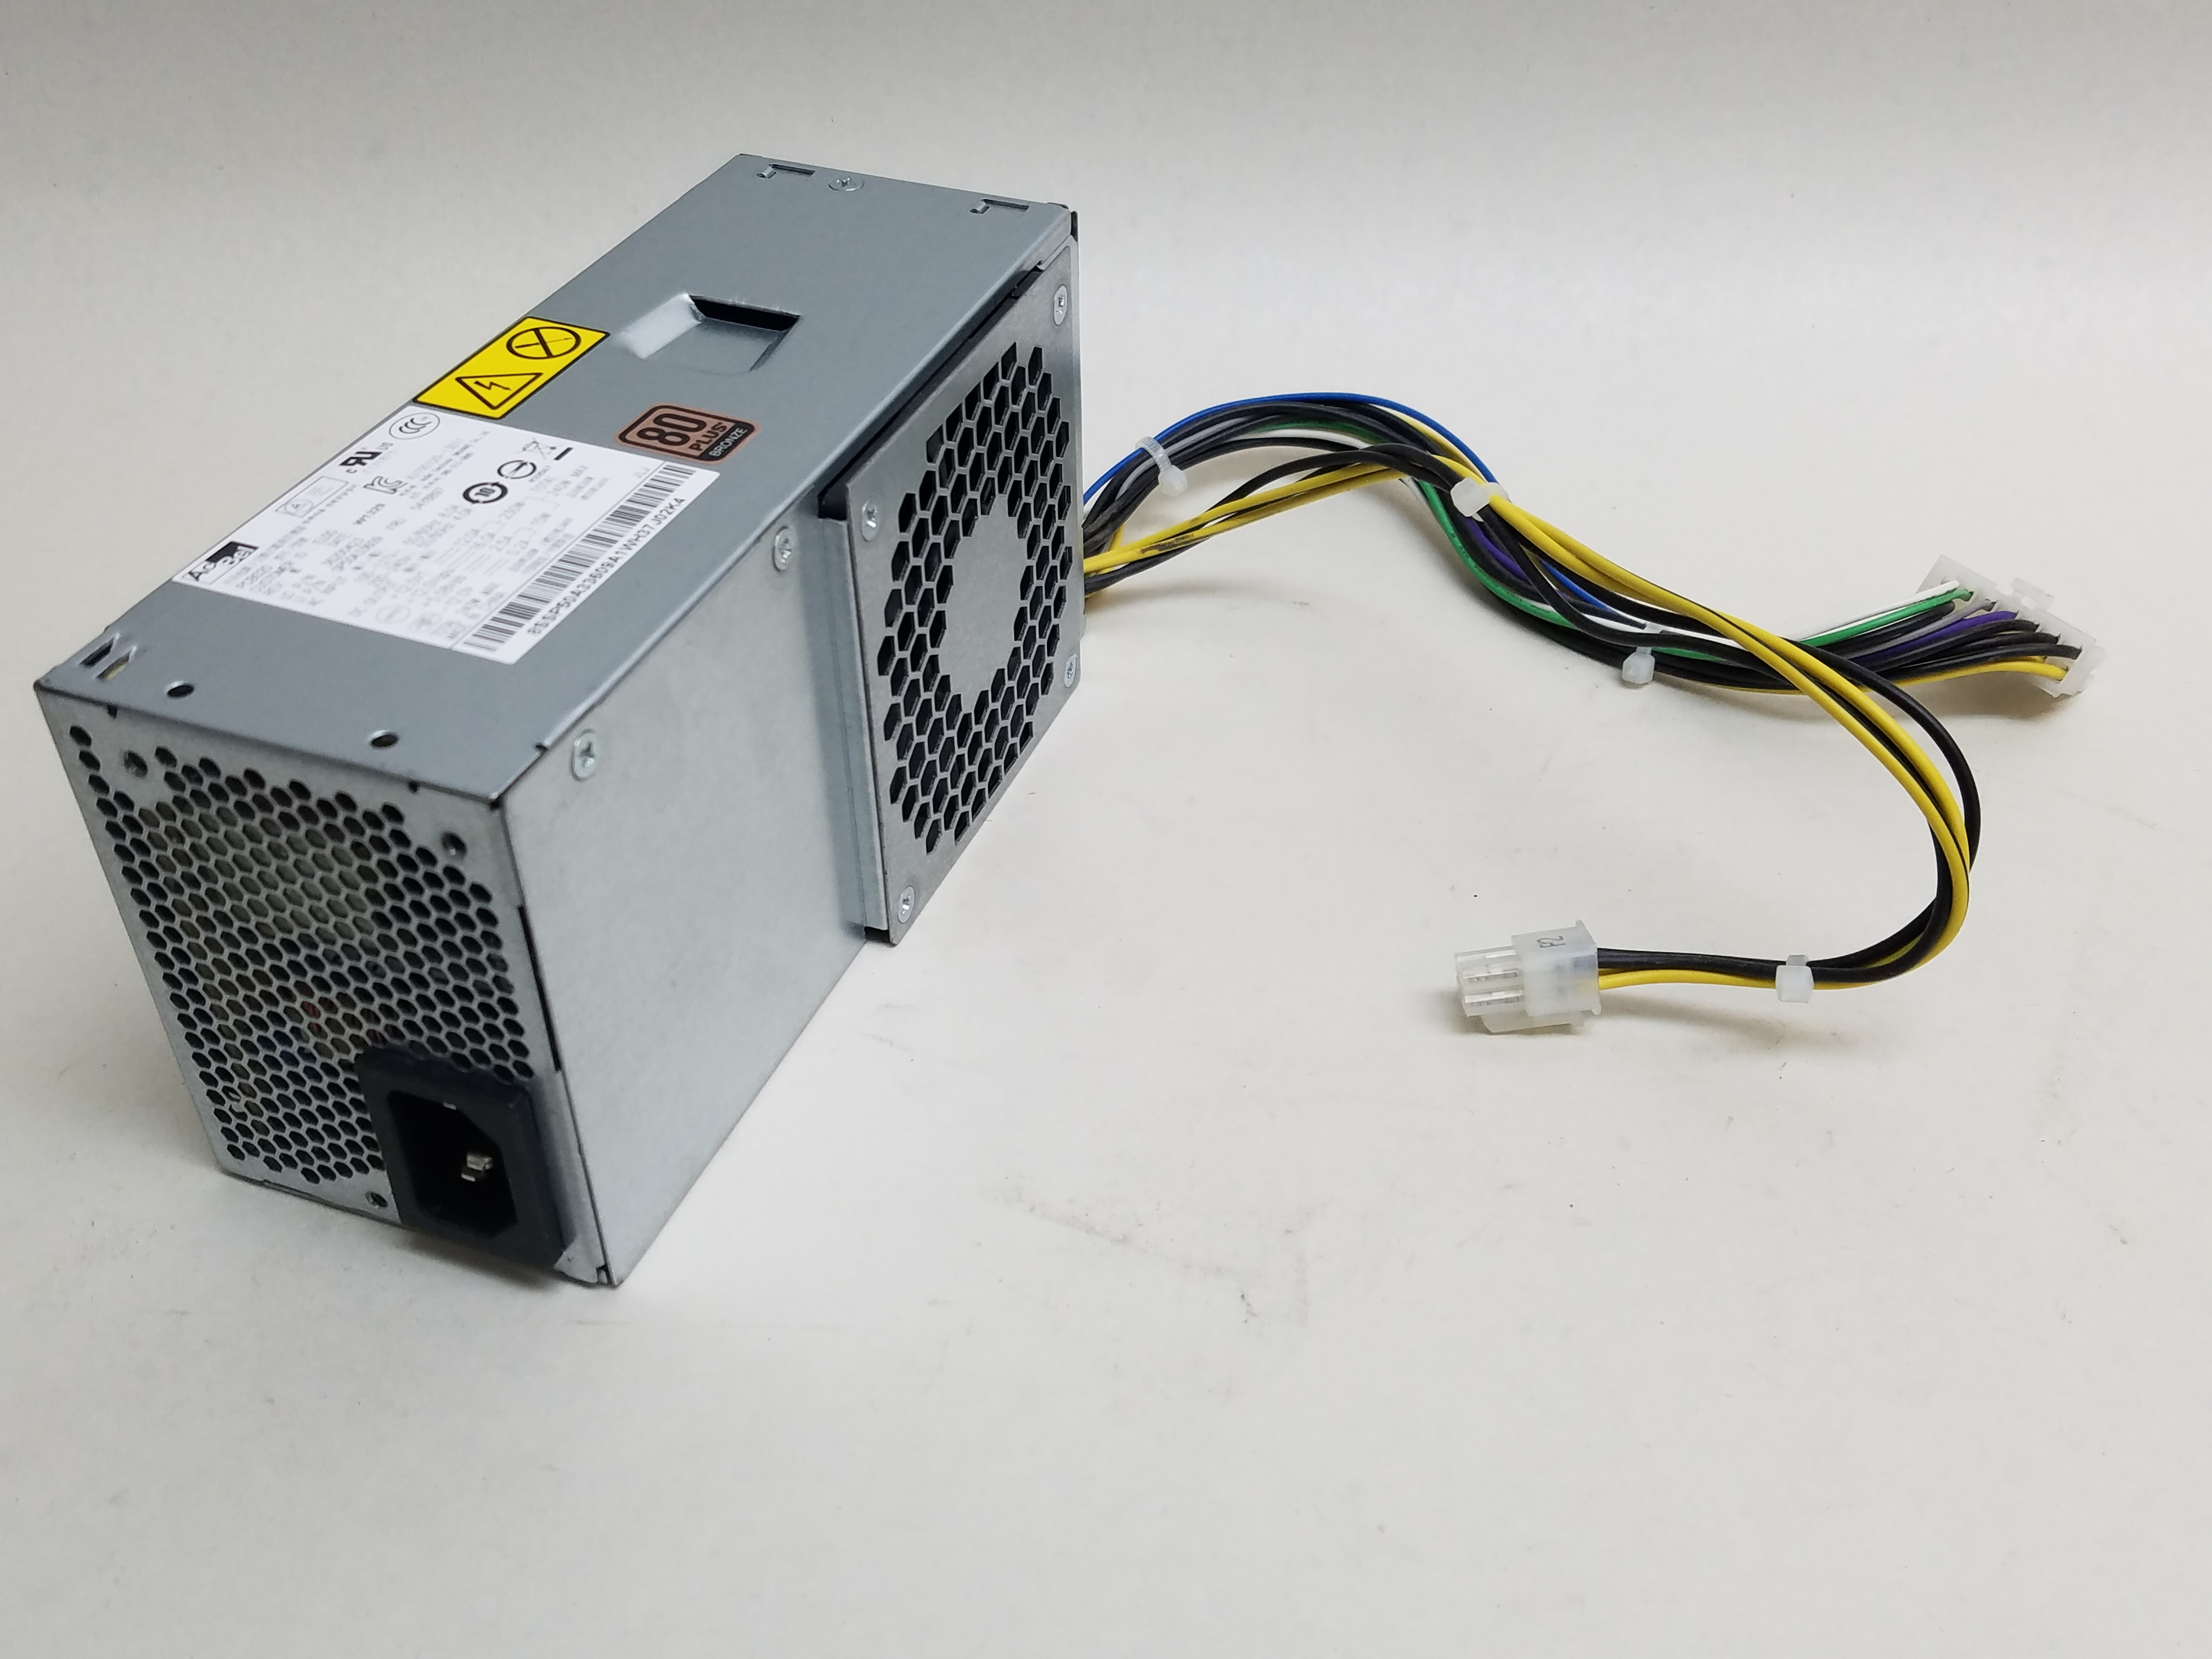 AcBel PCB020 ThinkCentre M82 240W 14-Pin TFX Desktop Power Supply